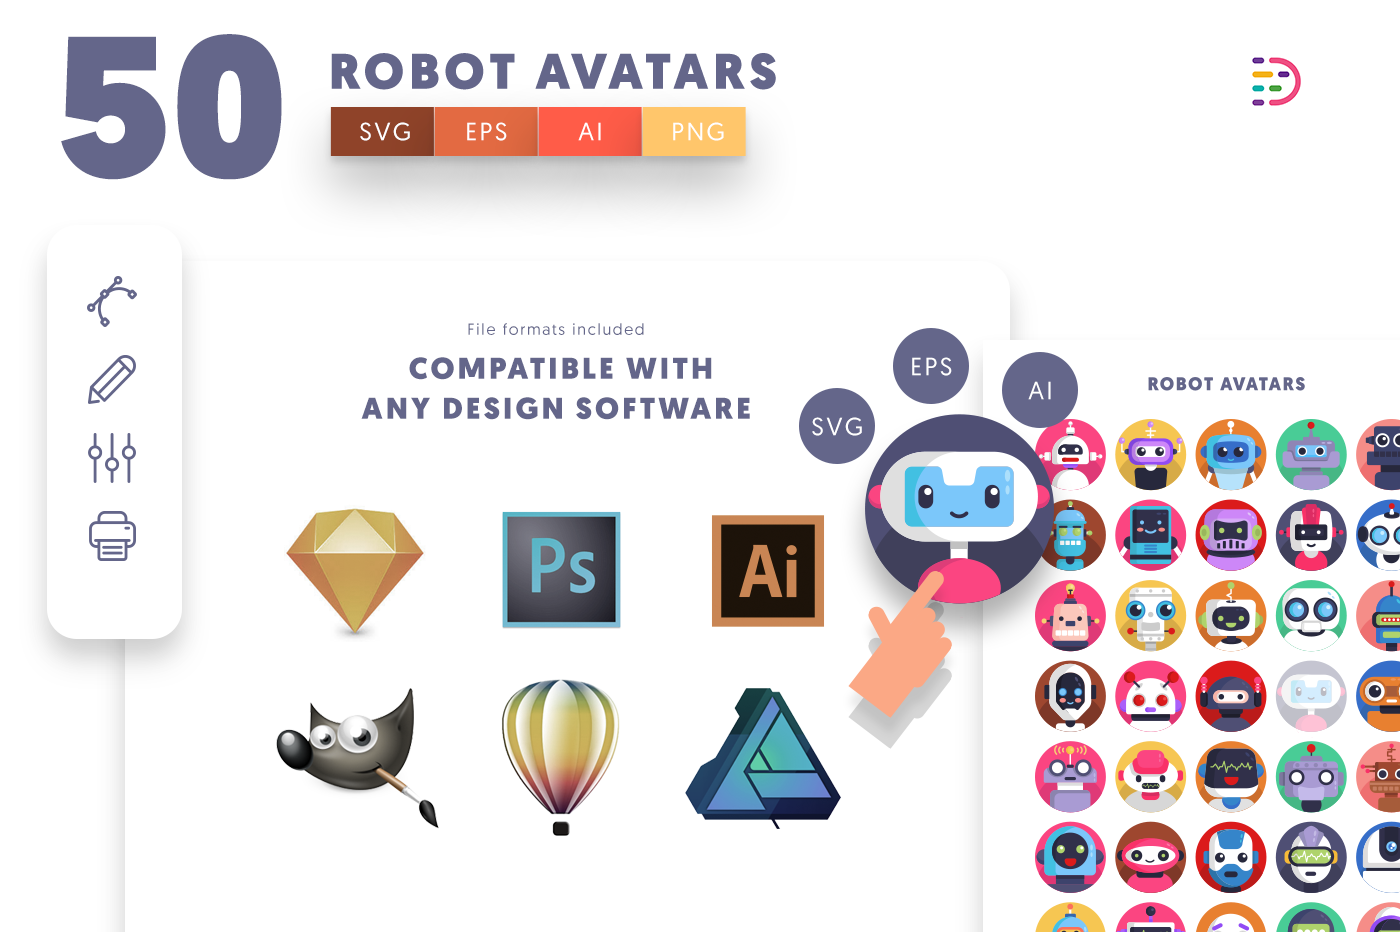 full vector 50 Robot Avatar Icons EPS, SVG, PNG